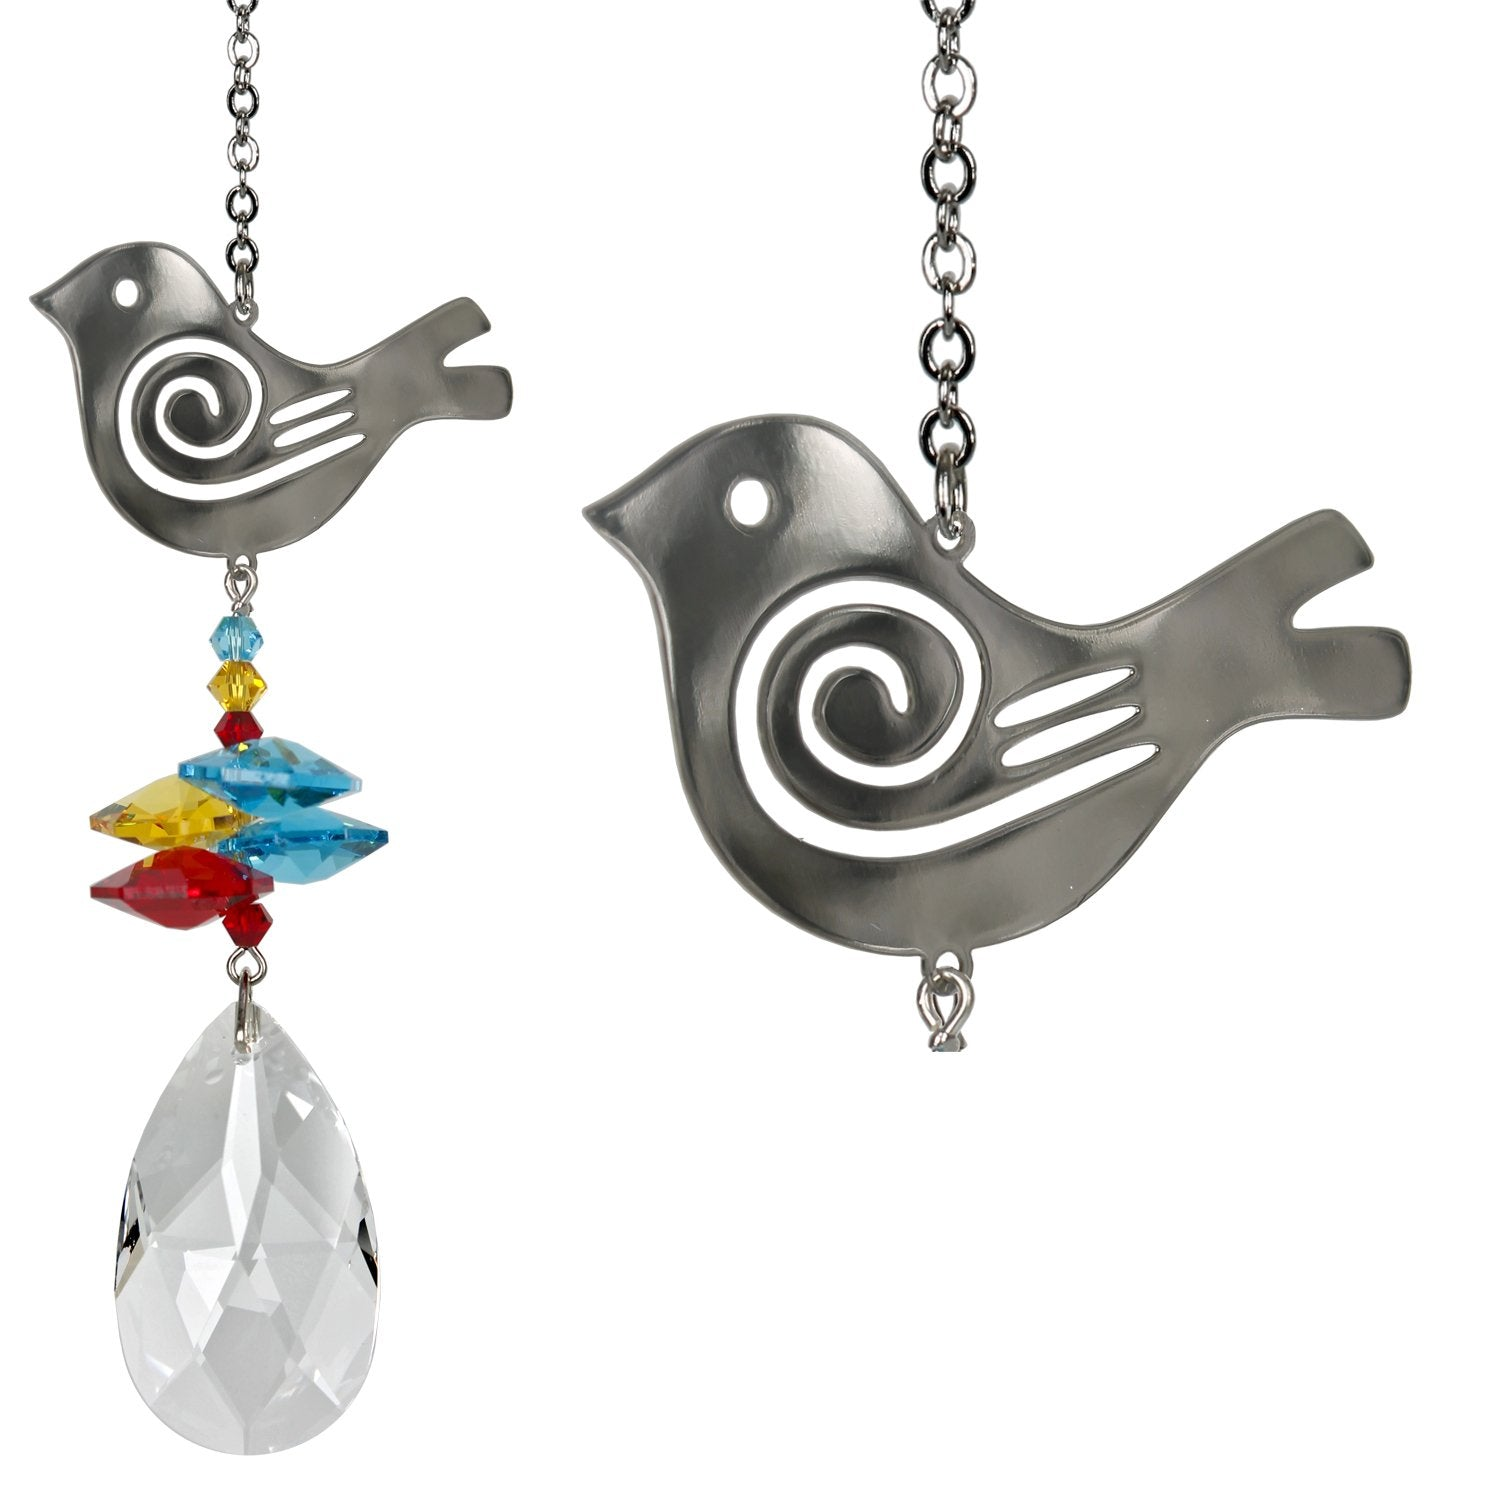 Crystal Fantasy Suncatcher - Bird main image